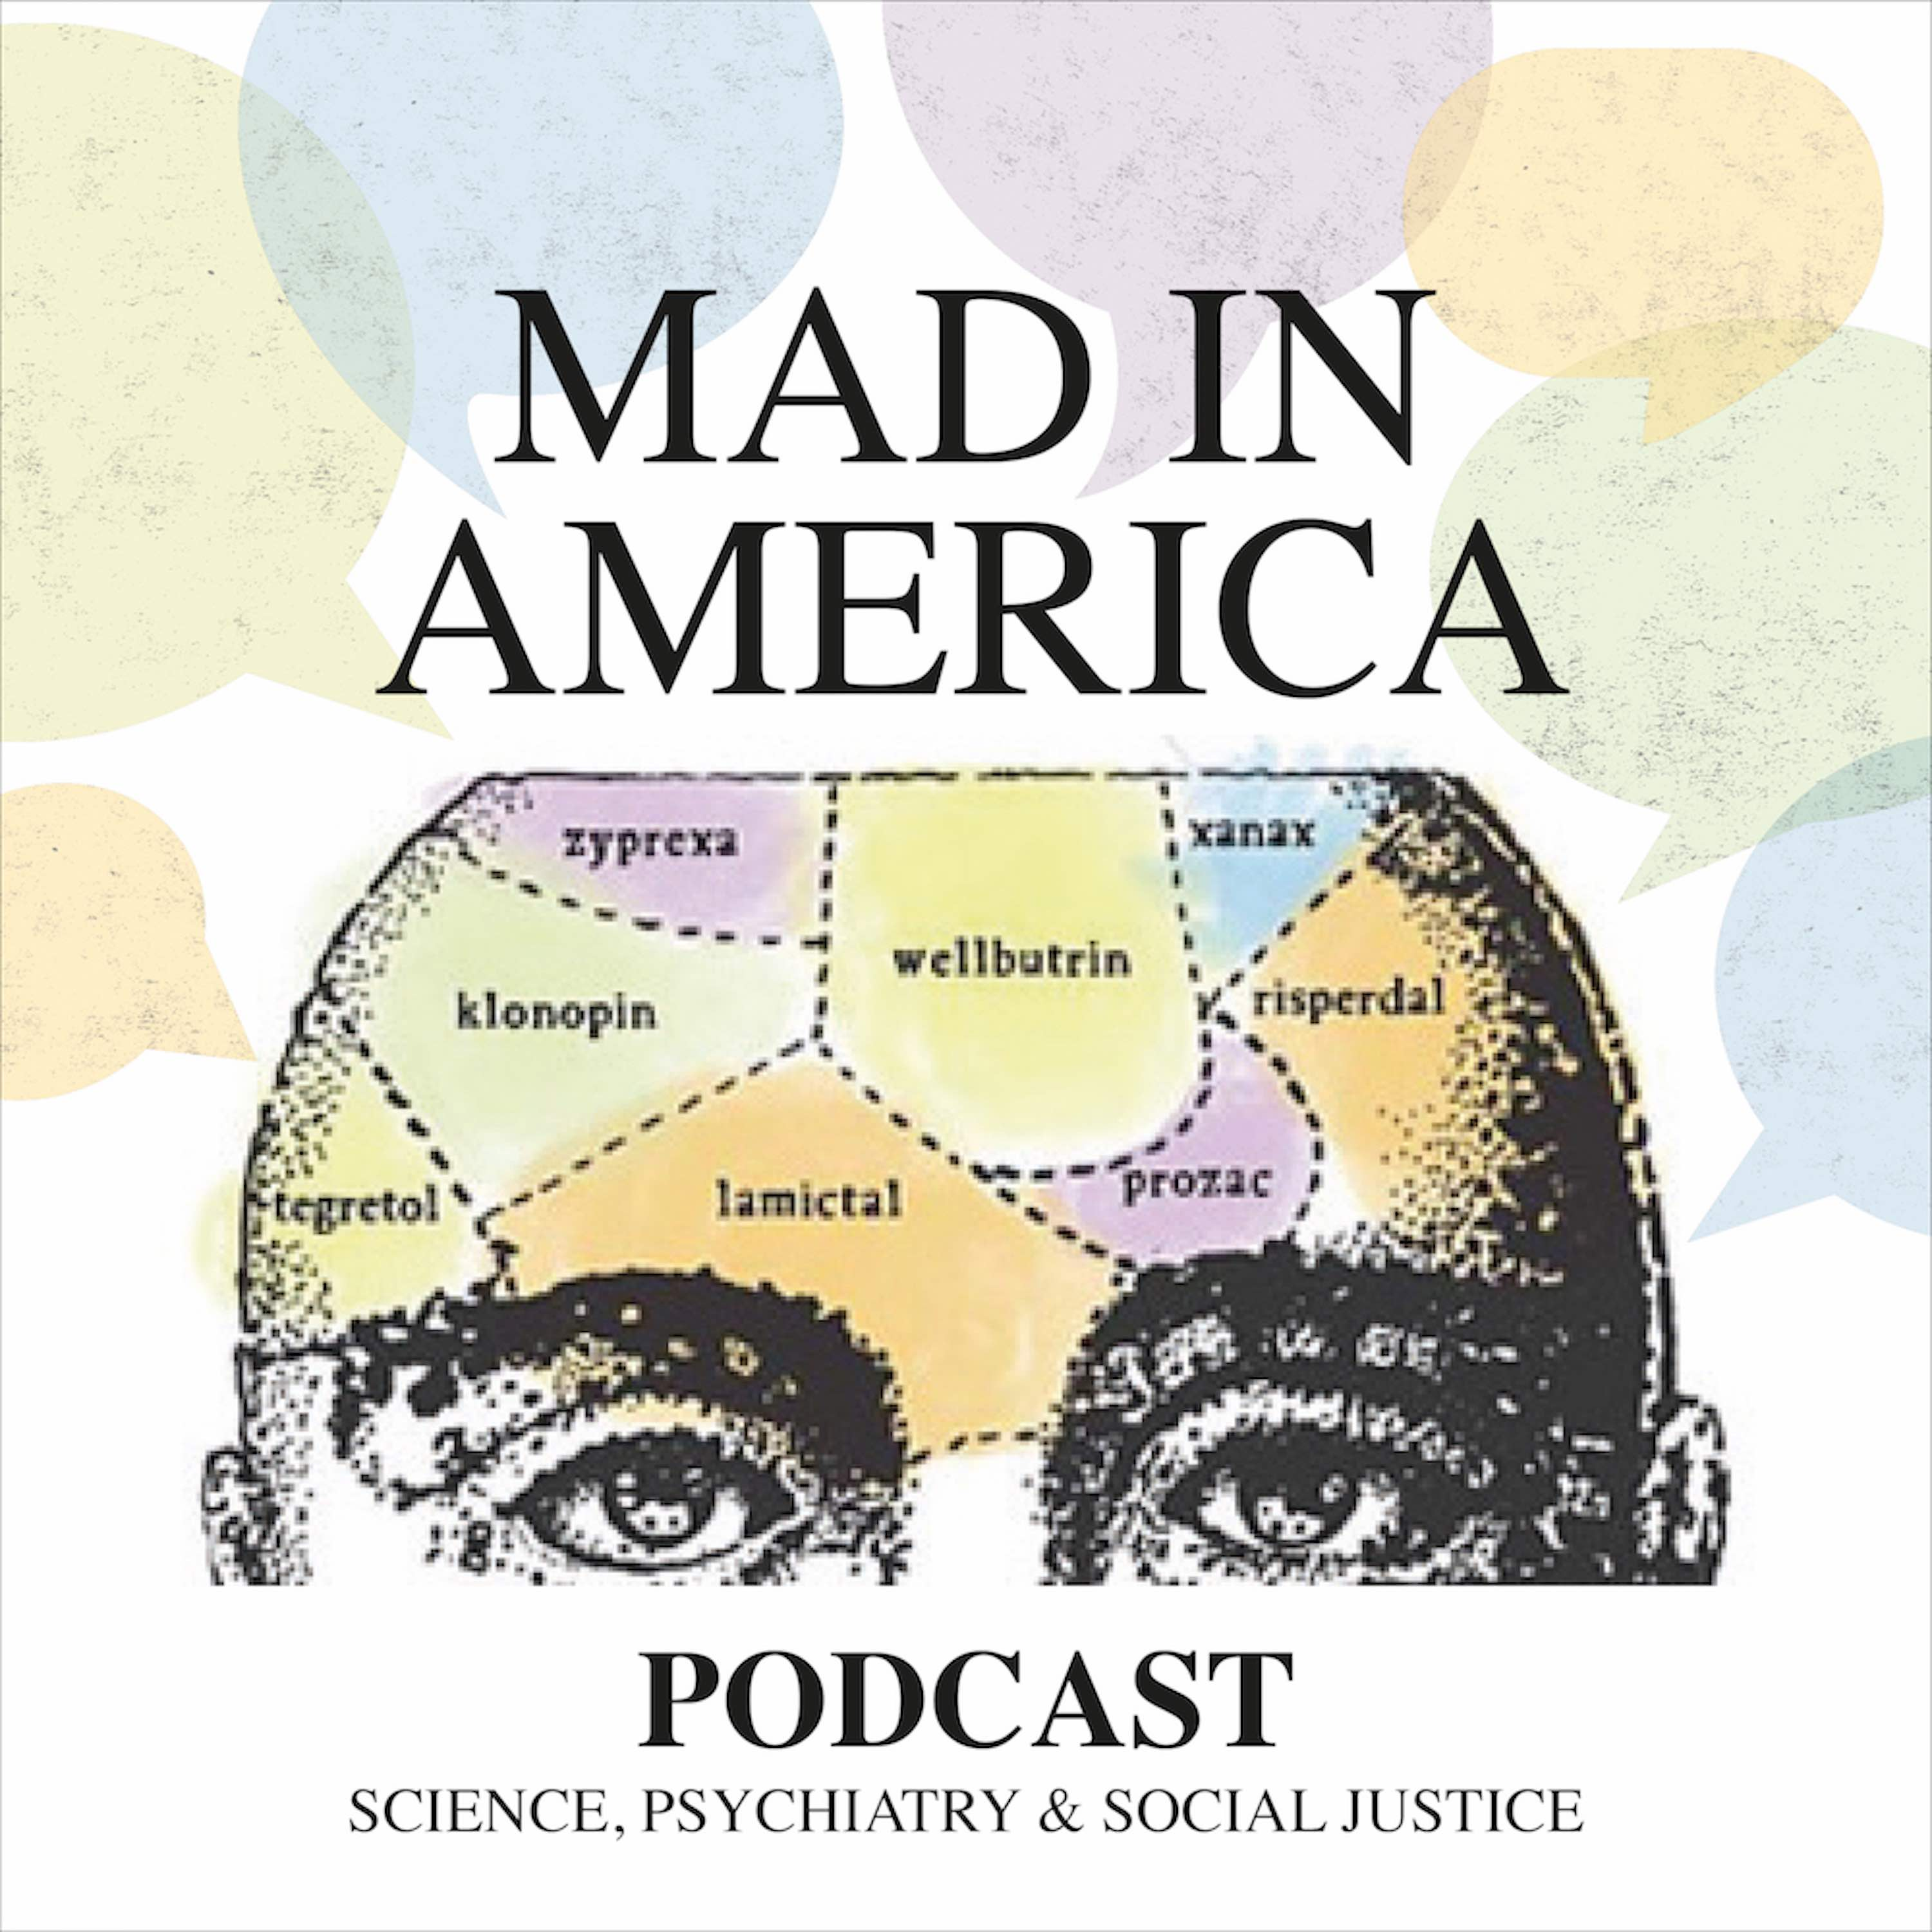 Mad in America: Rethinking Mental Health - Diana Kopua - Learning a Different Way